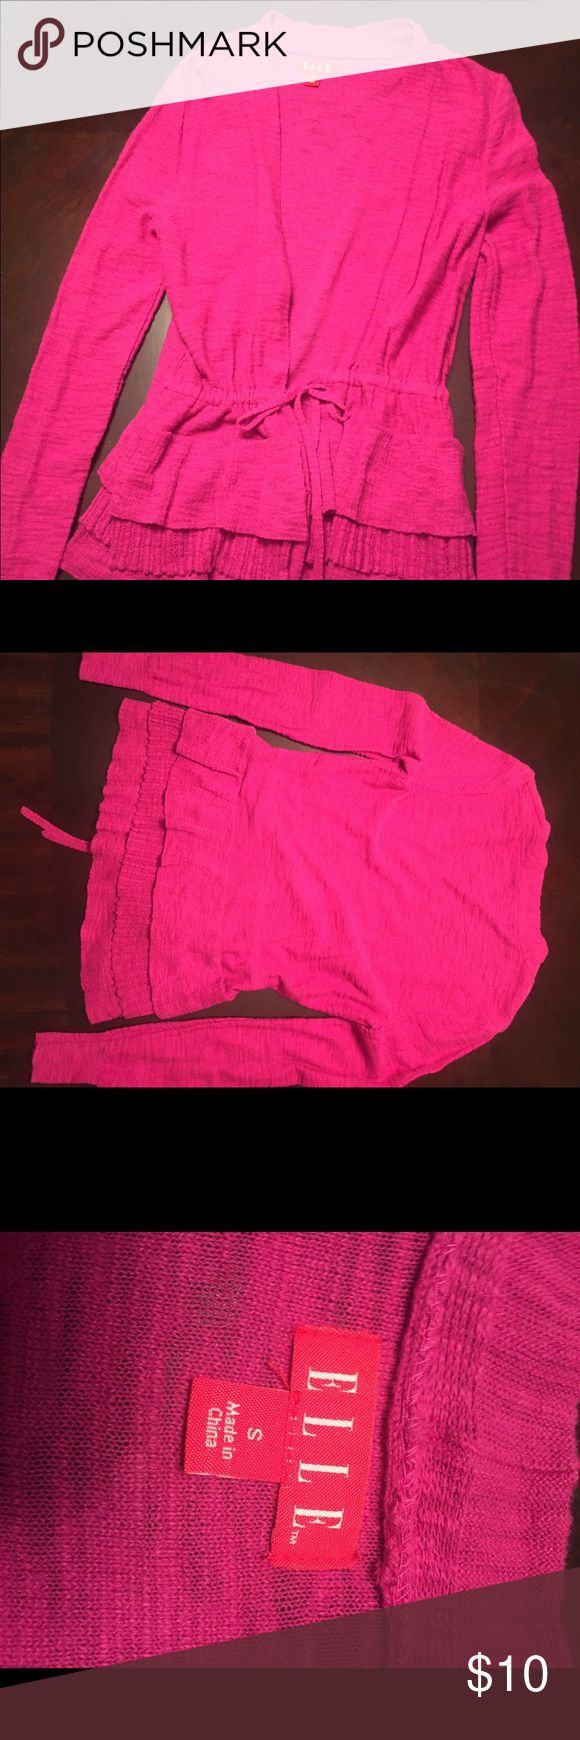 Elle Hot Pink Cardigan Sweater Lightweight hit pink cardigan sweater with tie. Like new condition. Elle Sweaters Cardigans